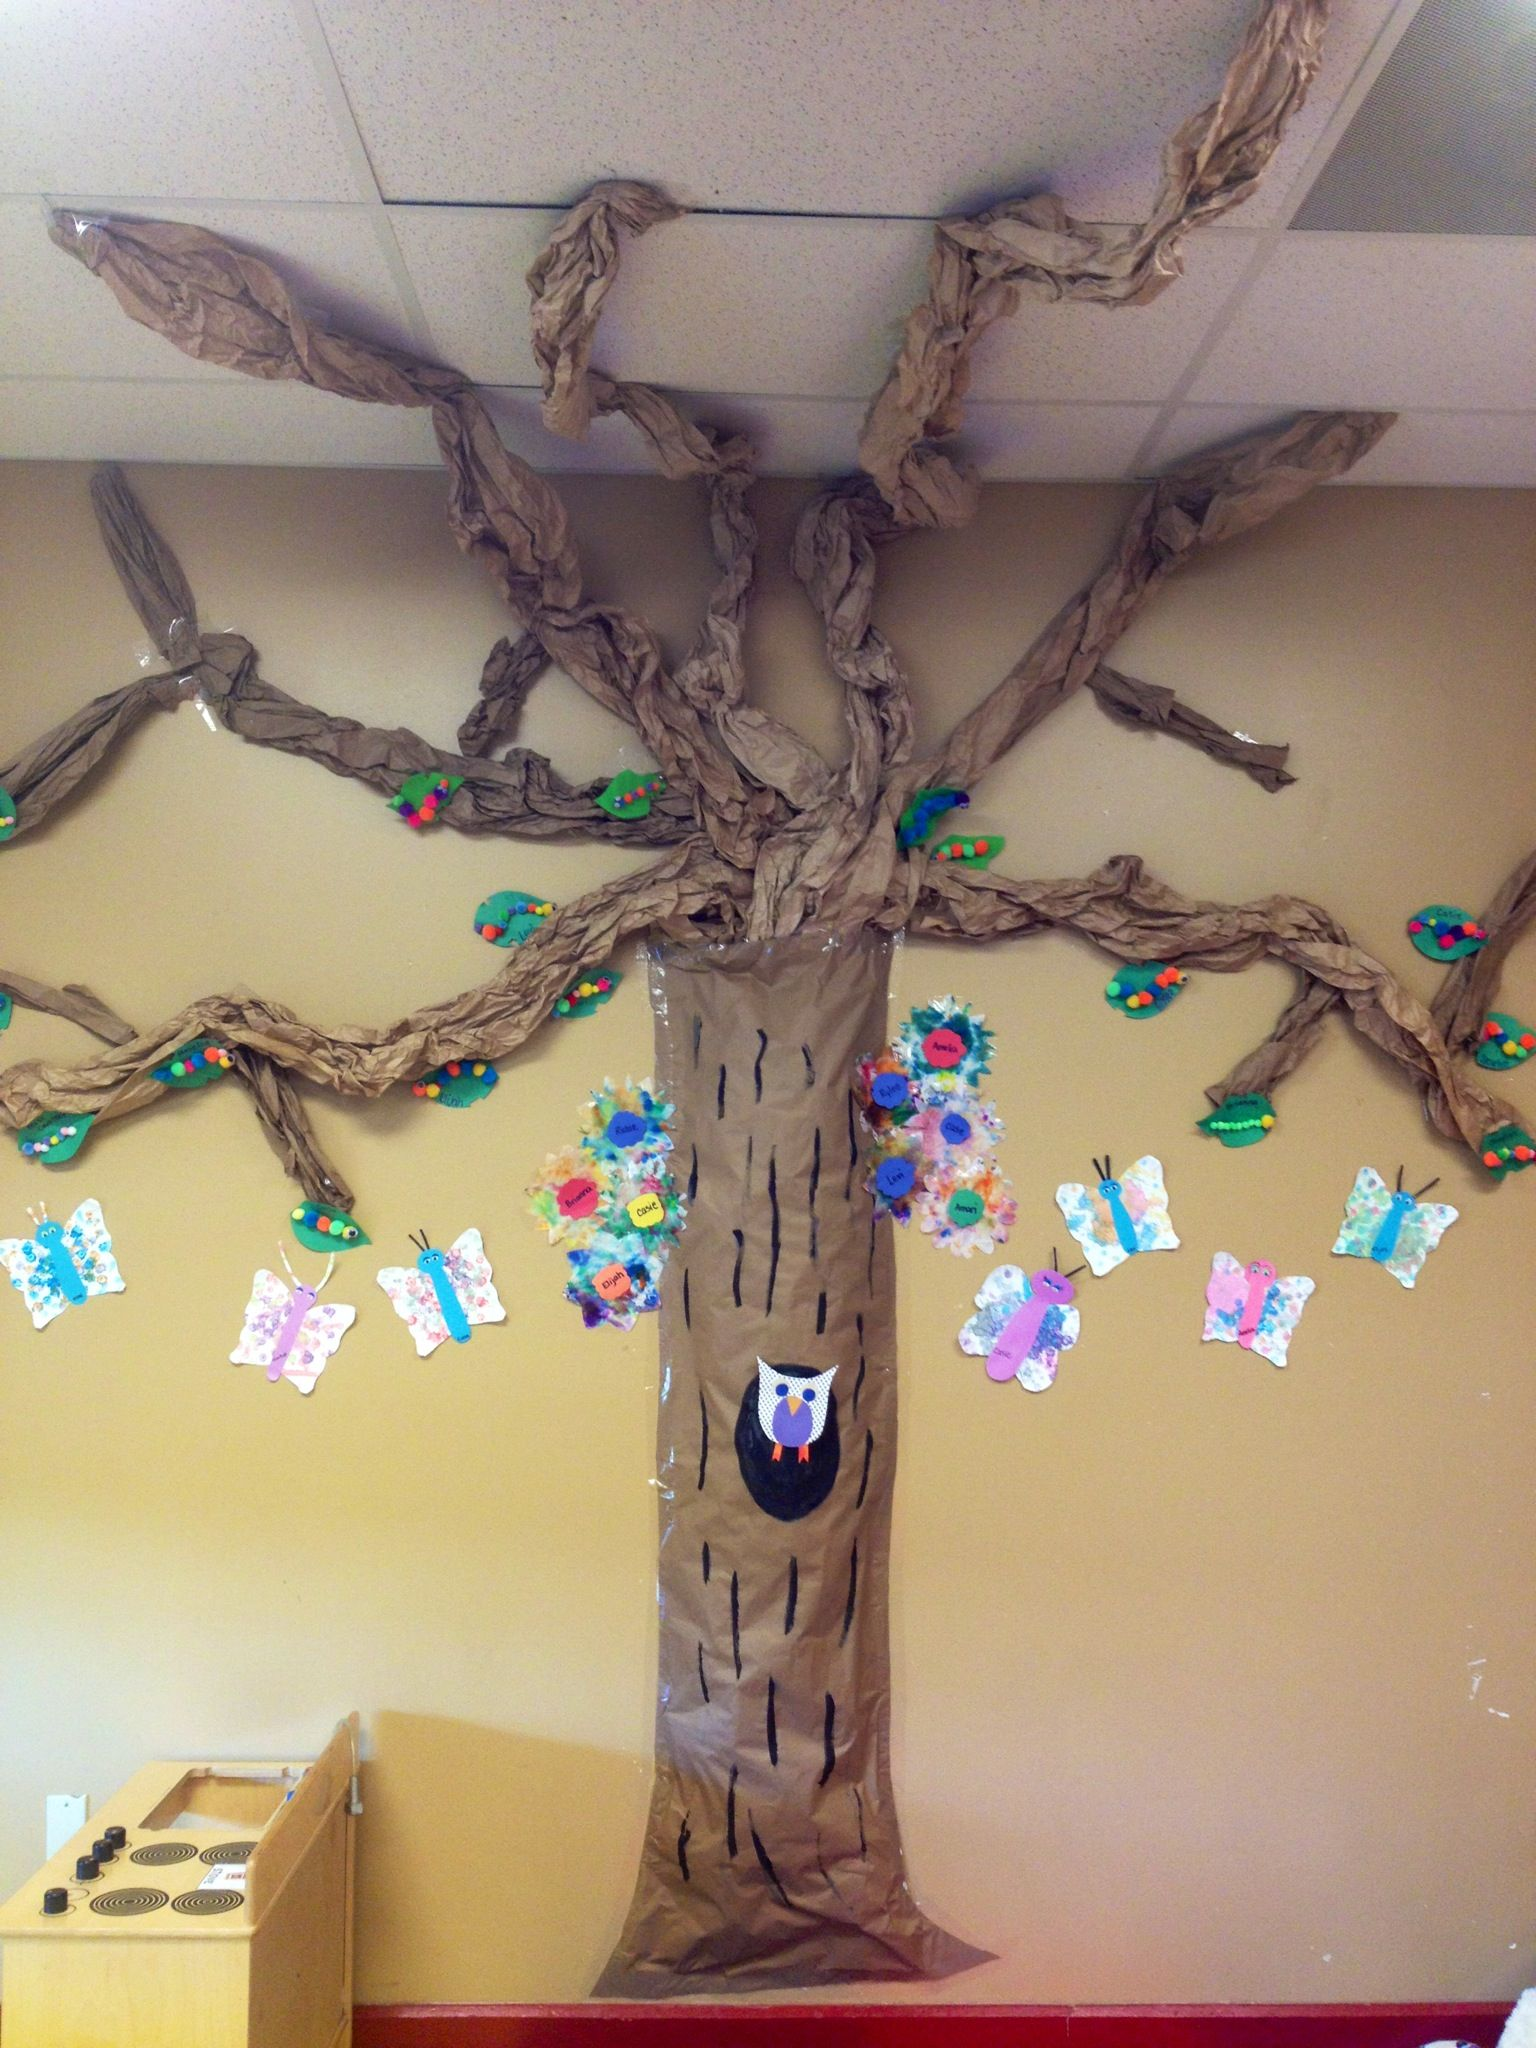 Classroom Tree We Made This With Newspaper And Brown Paper The Branches Are Scrap Brown Paper Classroom Tree Diy Classroom Decorations Classroom Decor Middle